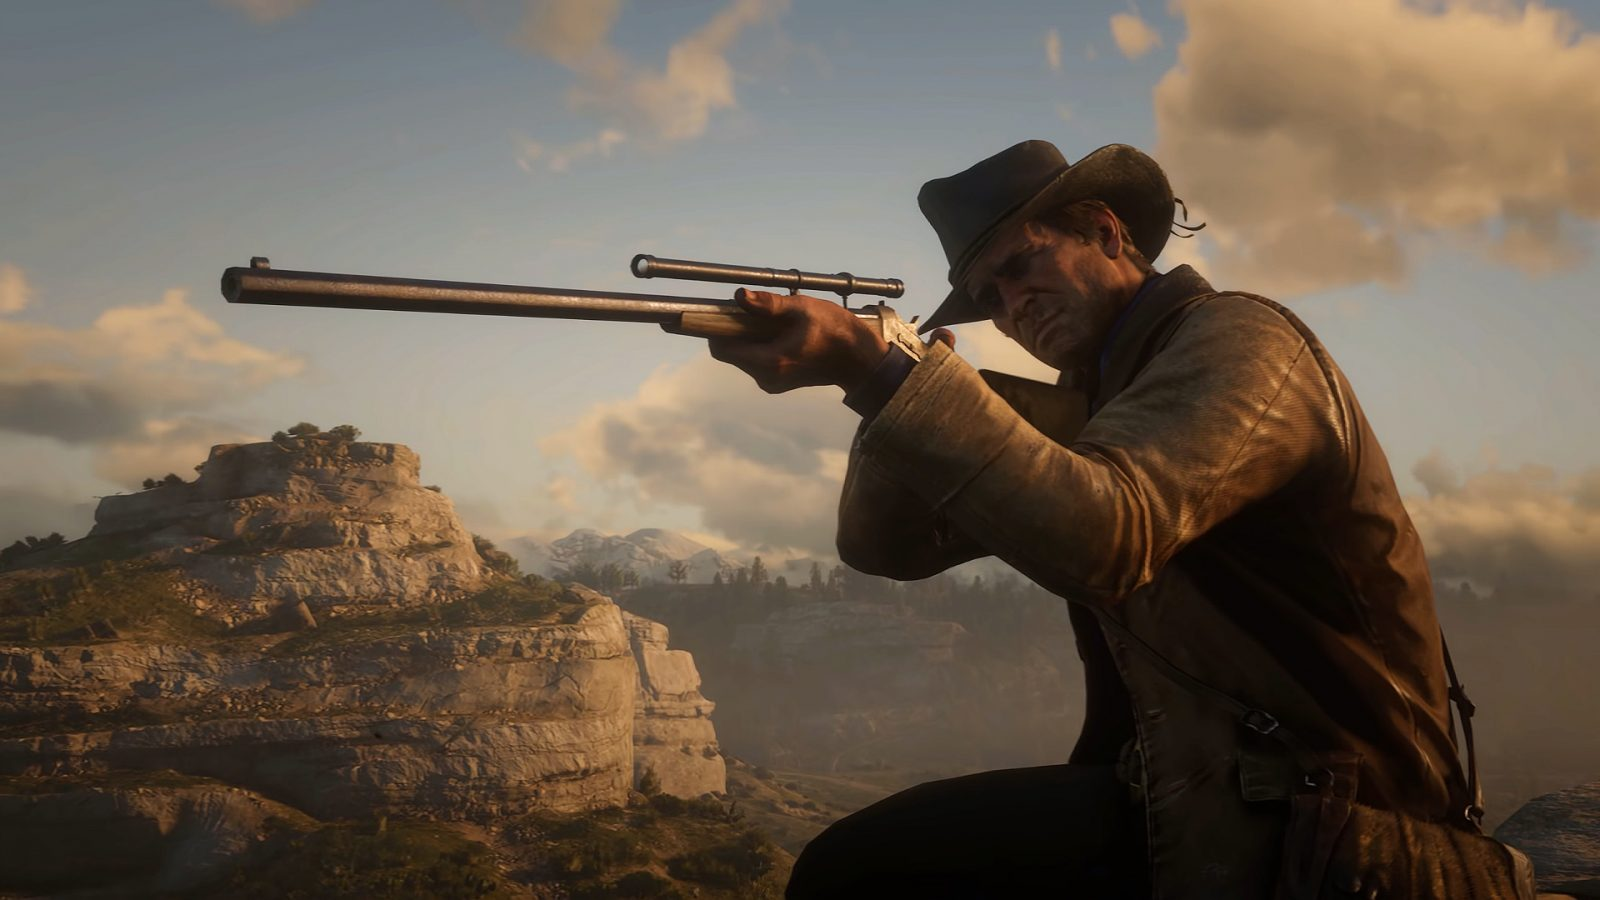 Red Dead Redemption 2 has sold-in over 26 million copies